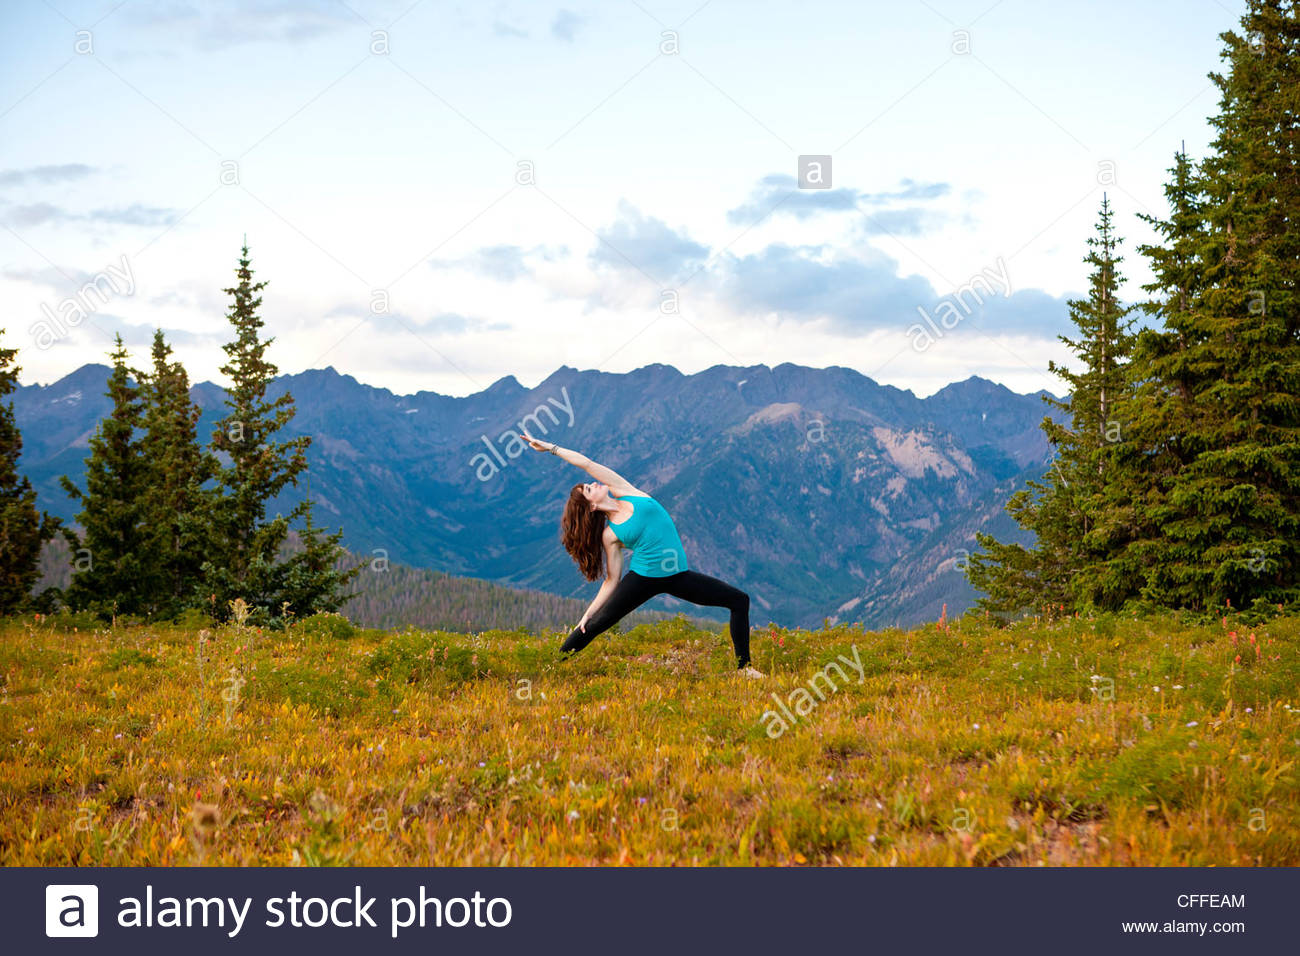 A woman performs a Hatha Yoga pose on a mountain top. - Stock Image